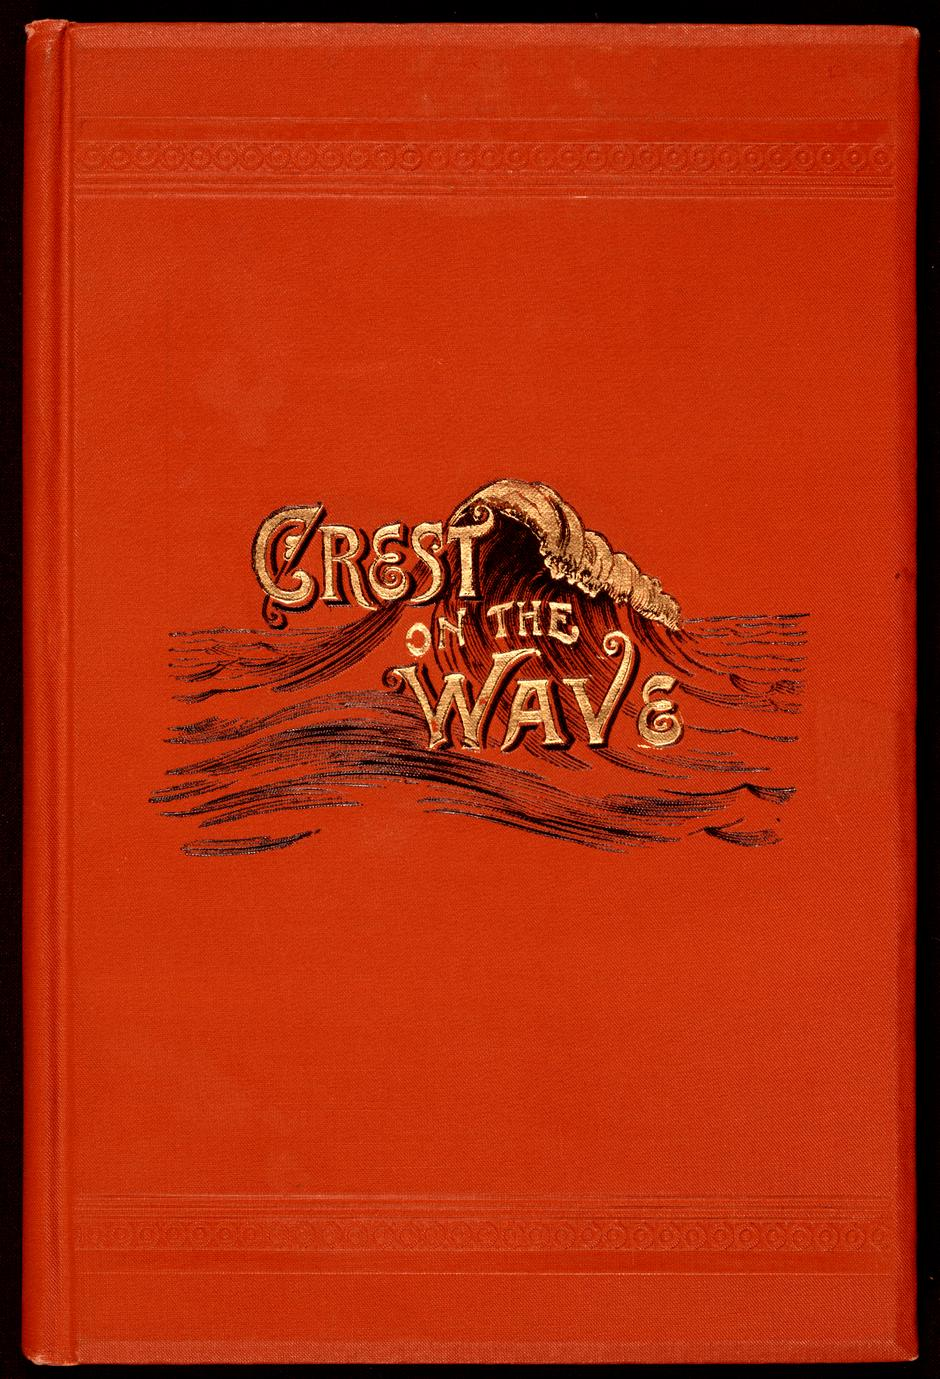 Crest on the wave : poems (1 of 2)